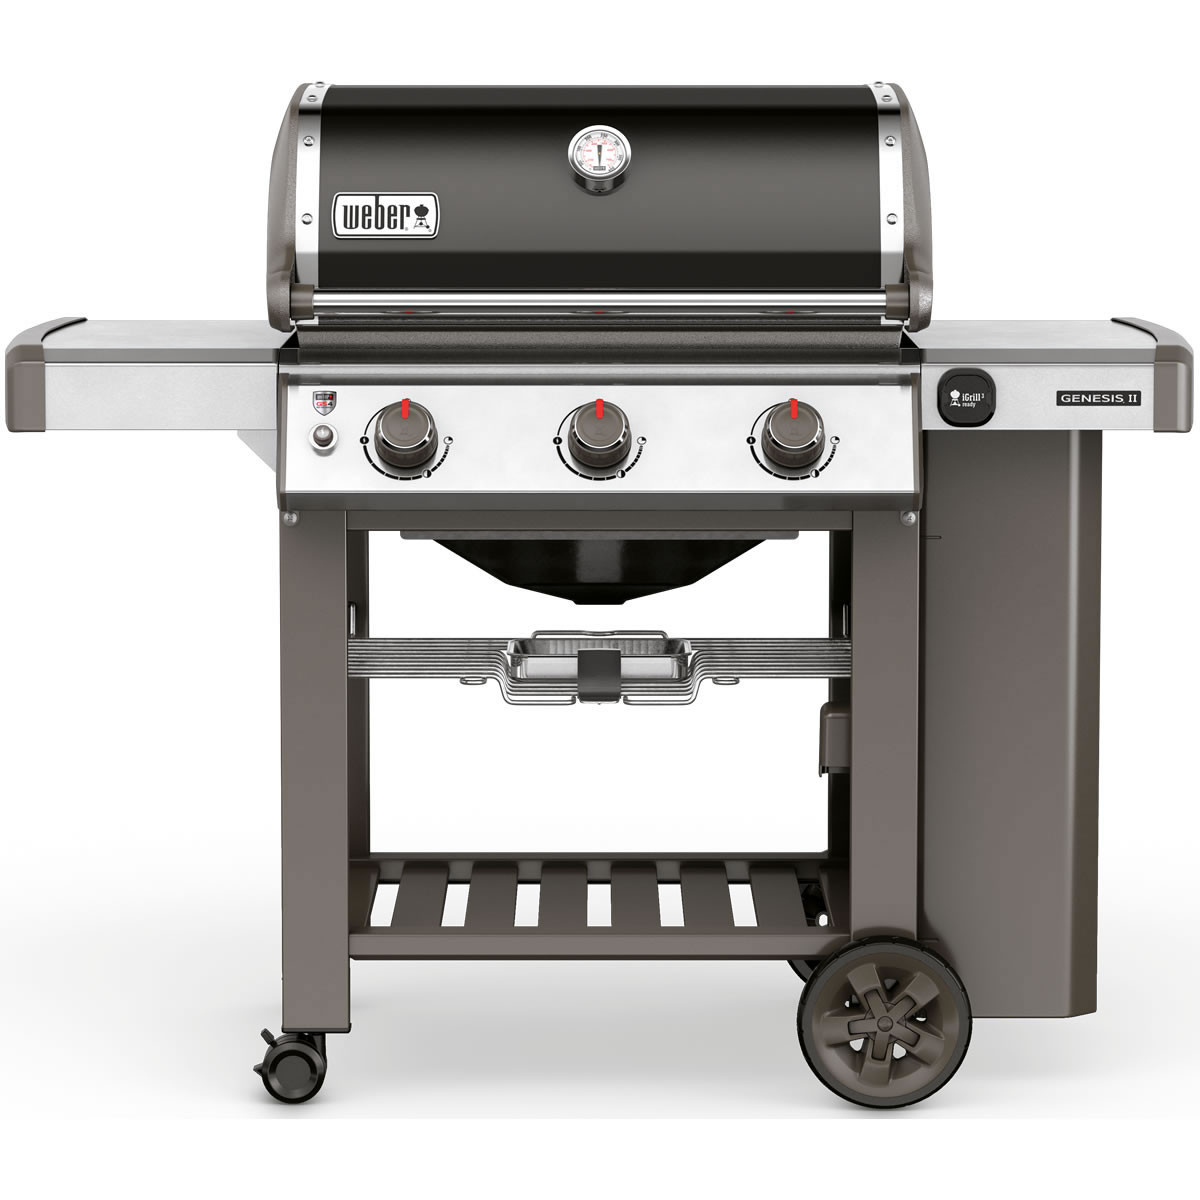 Weber Genesis II E-310 GBS Black Gas Barbecue 61010174